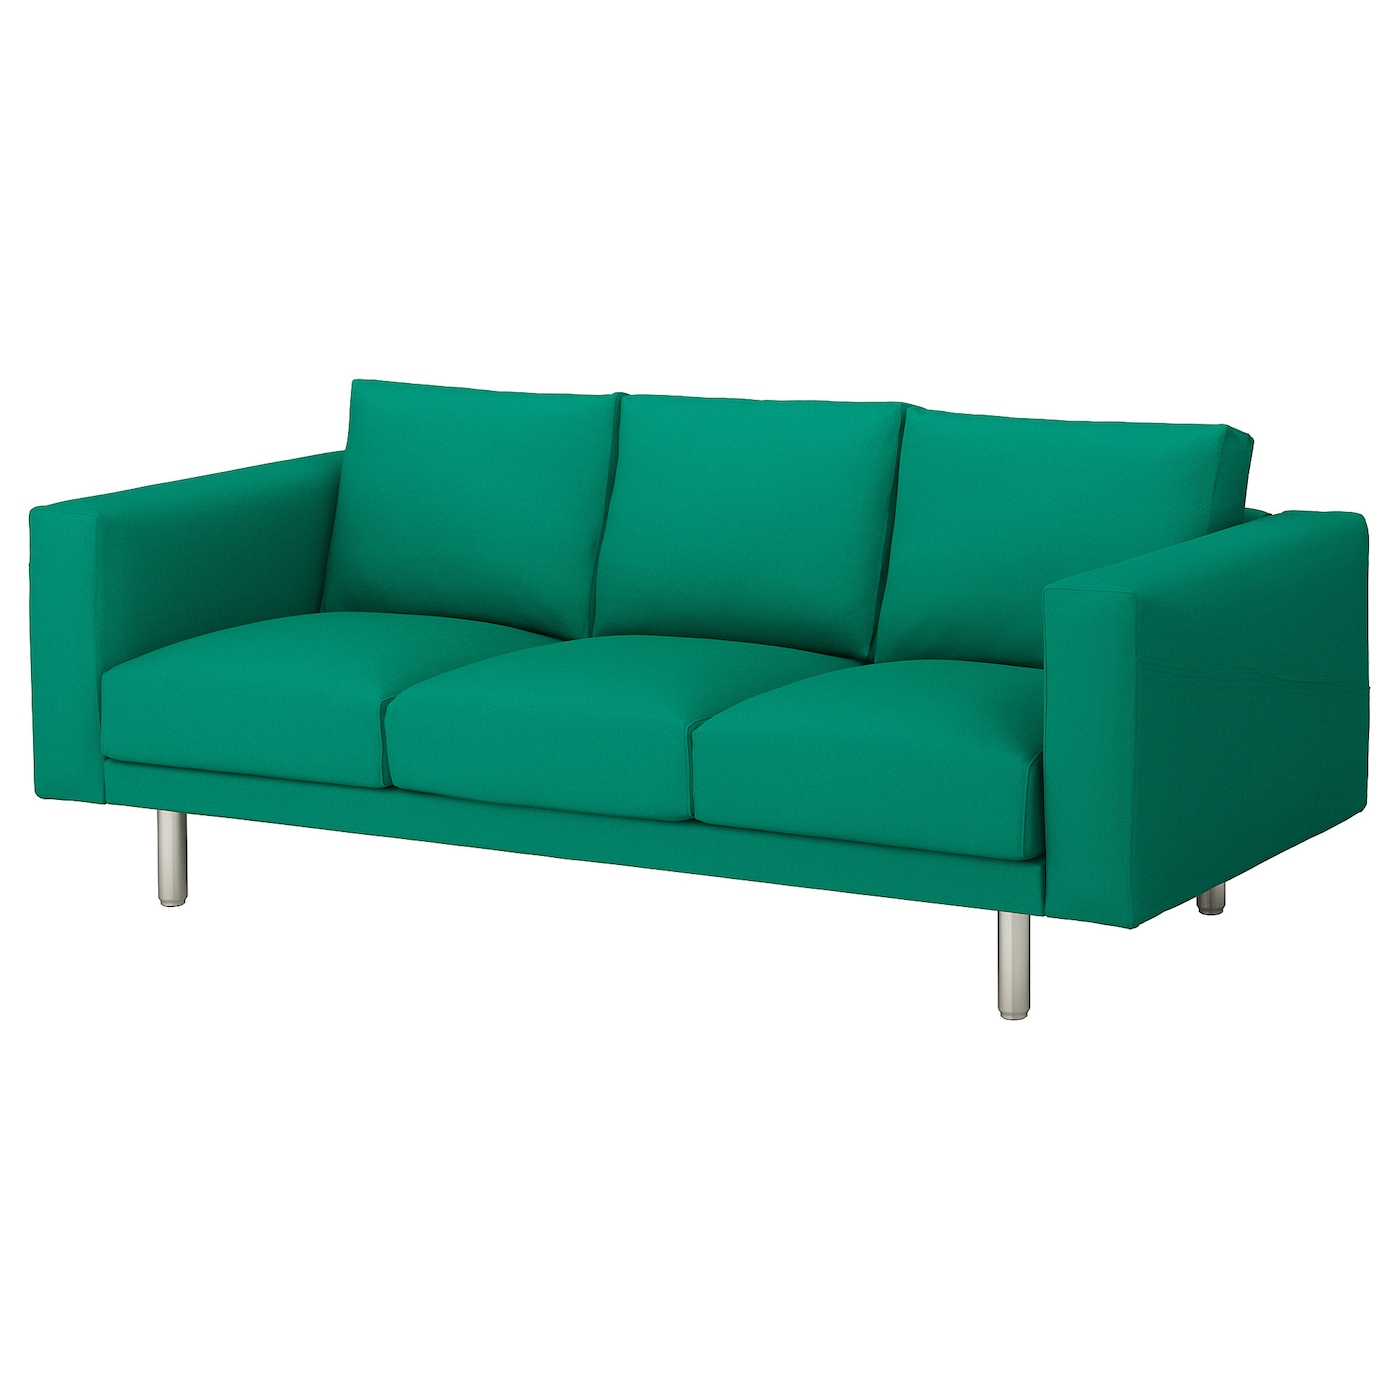 IKEA NORSBORG 3-seat sofa 10 year guarantee. Read about the terms in the guarantee brochure.